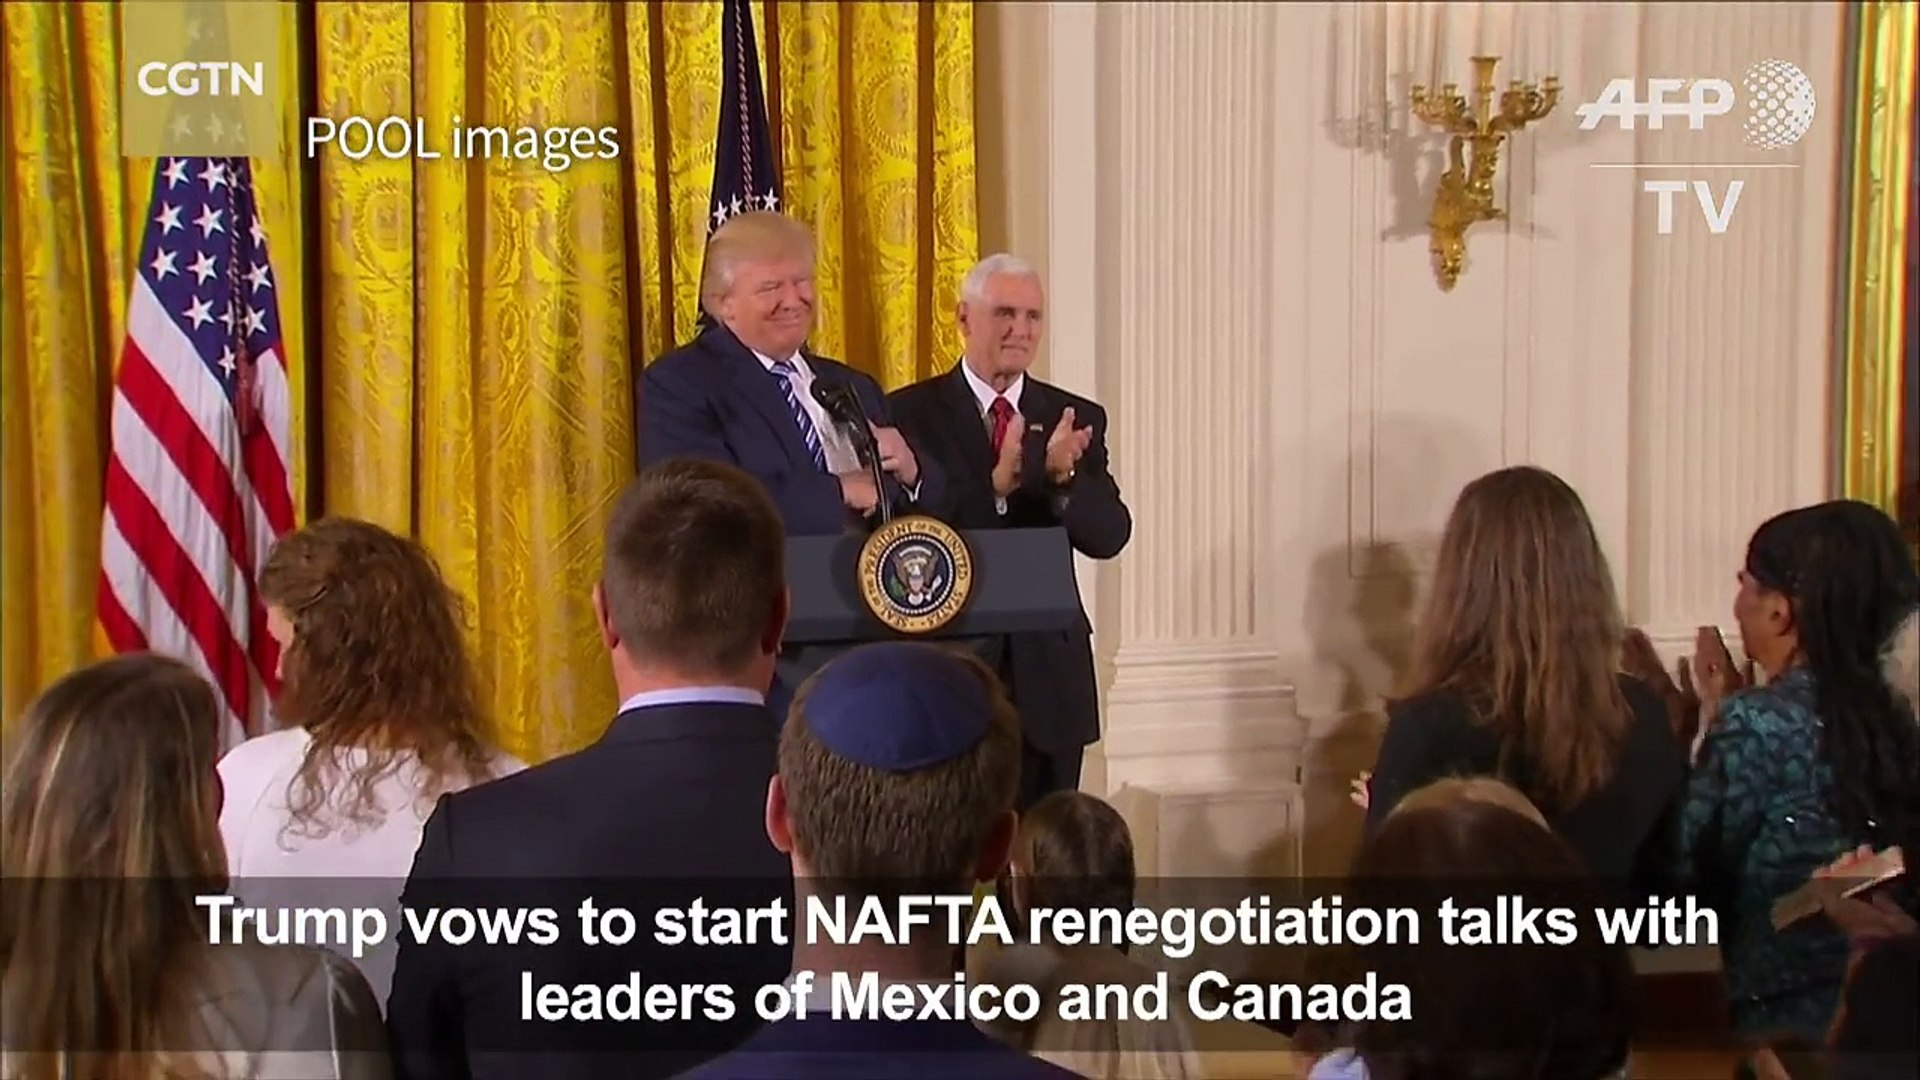 Trump vows to 'start renegotiating' free trade agreement with Mexico, Canada